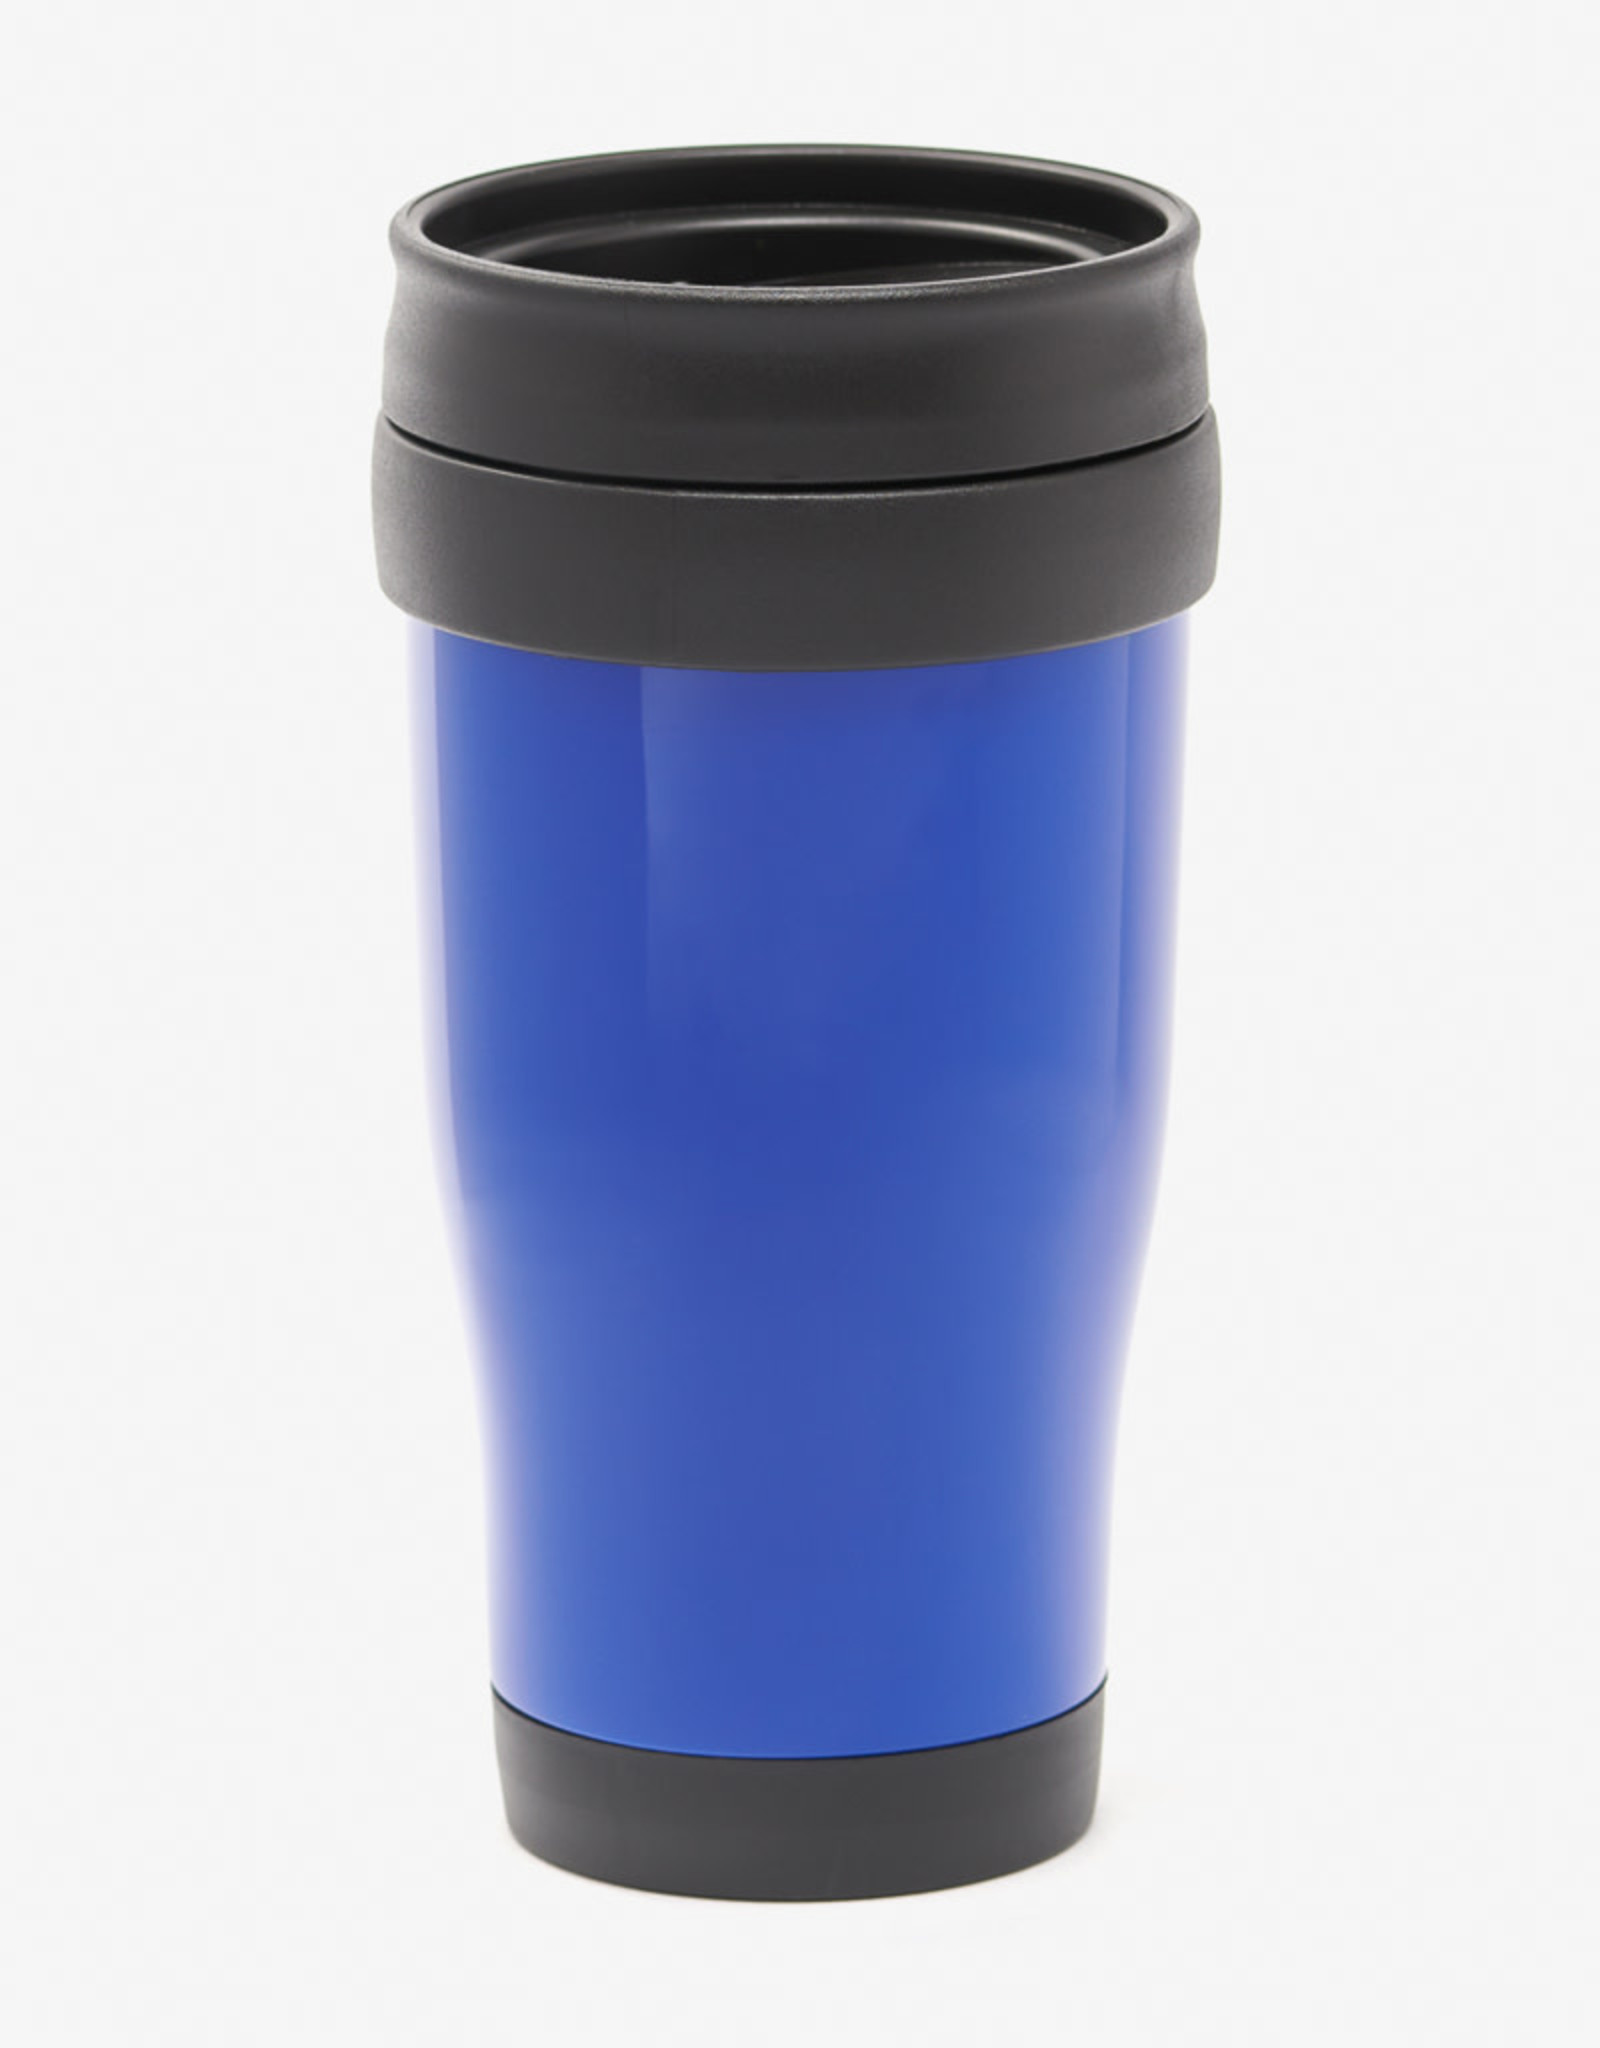 Insulated coffee cup, plastic 16 oz blue